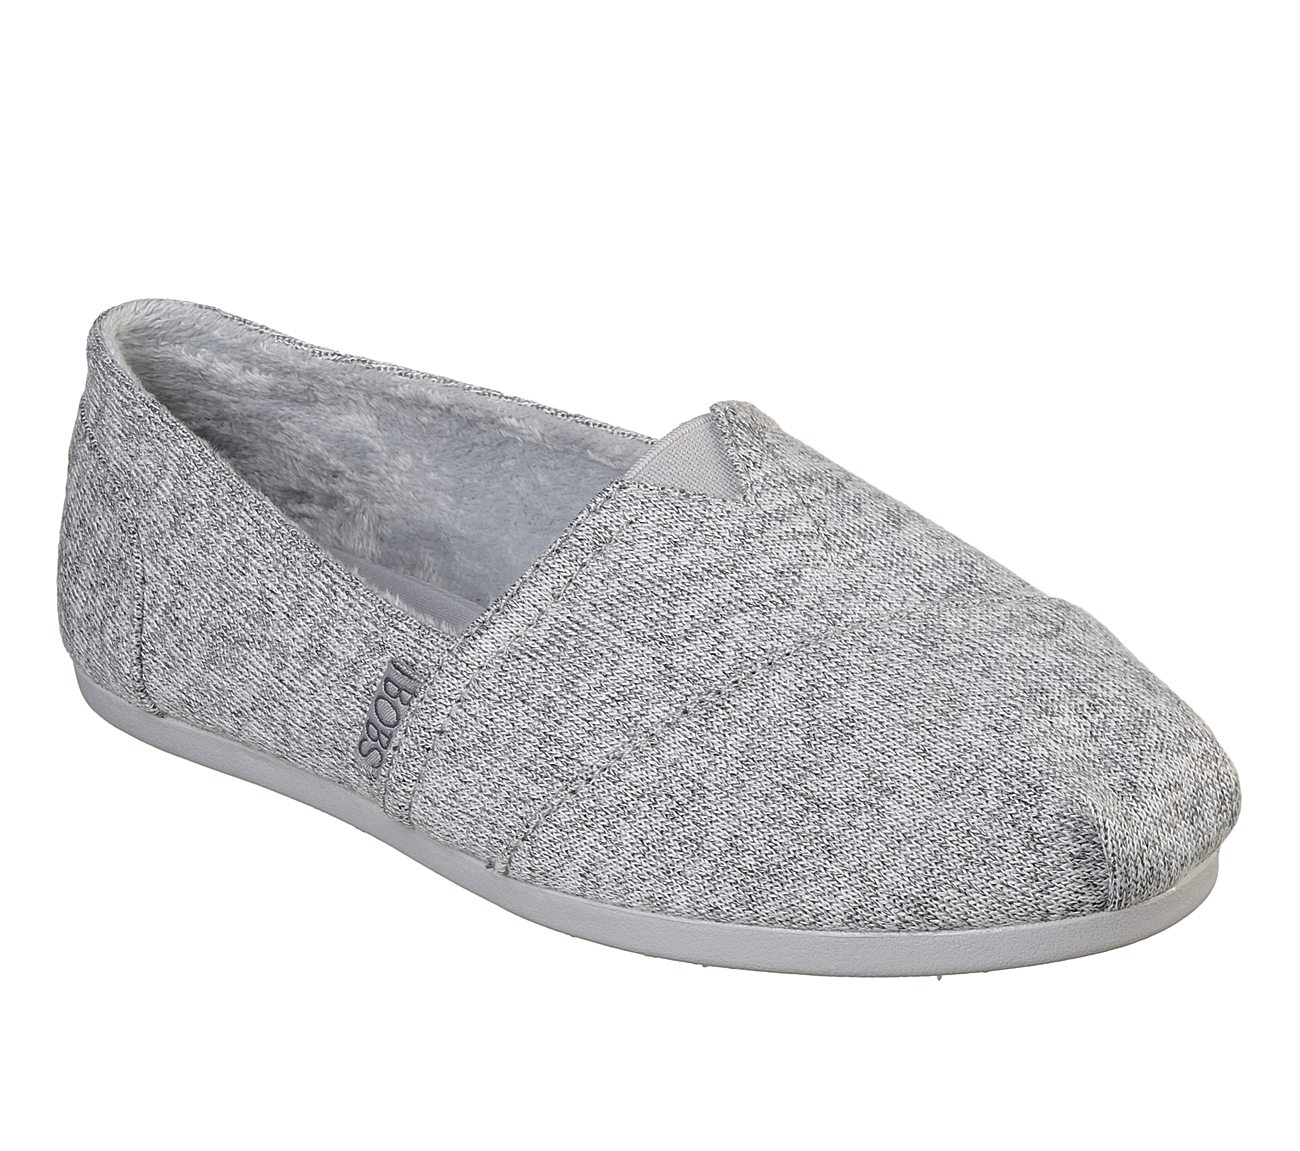 00354a8f1a56 Buy SKECHERS BOBS Plush - Winter Surprise BOBS Shoes only  42.00